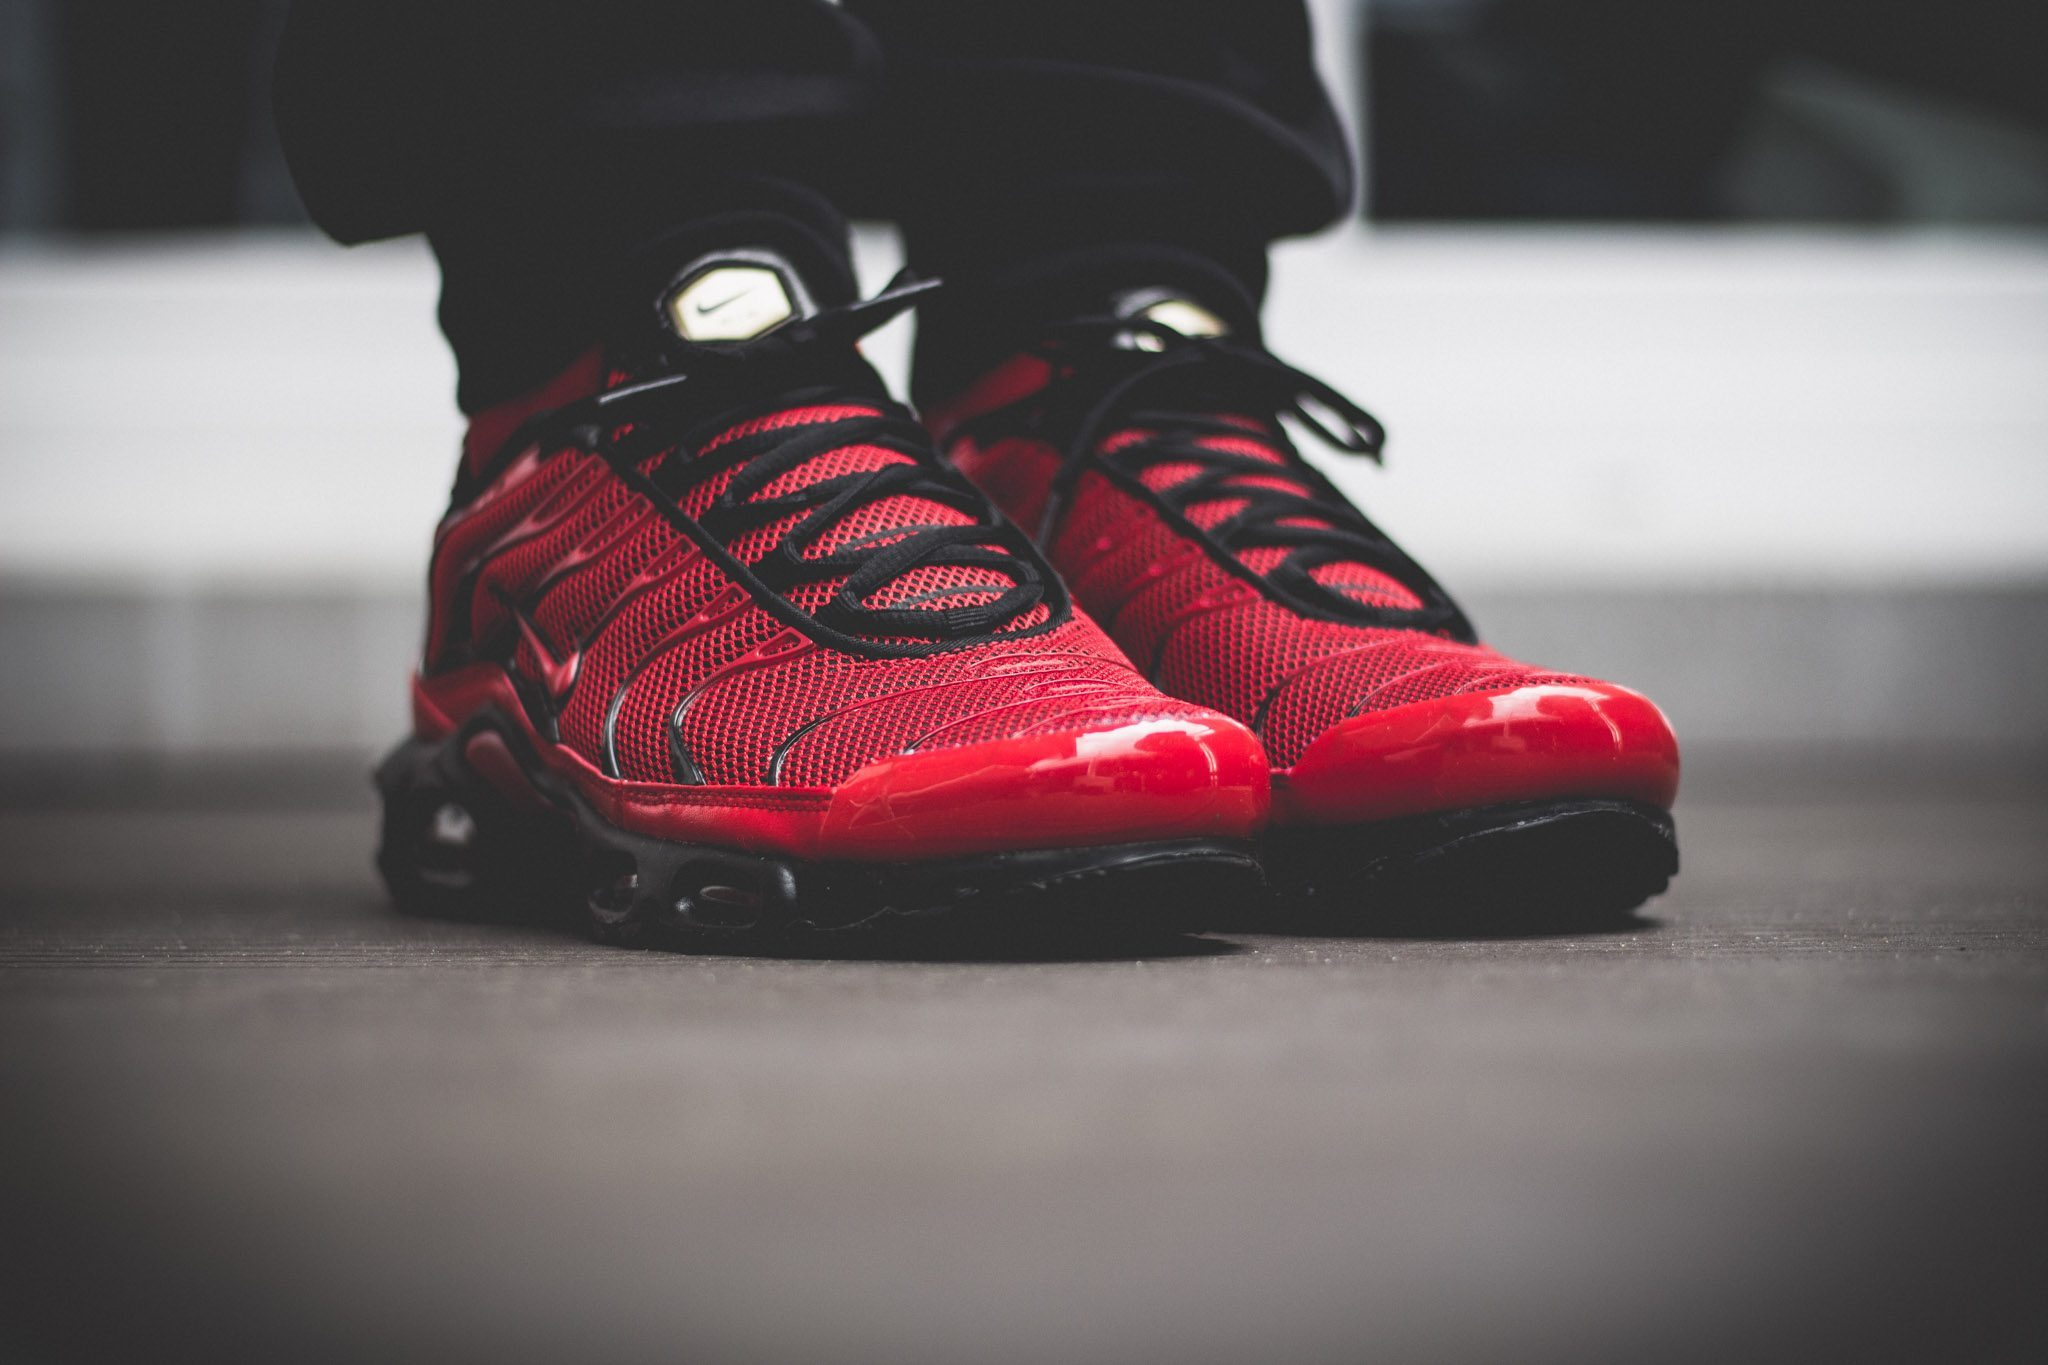 Nike Tuned 1 Red On Feet 3